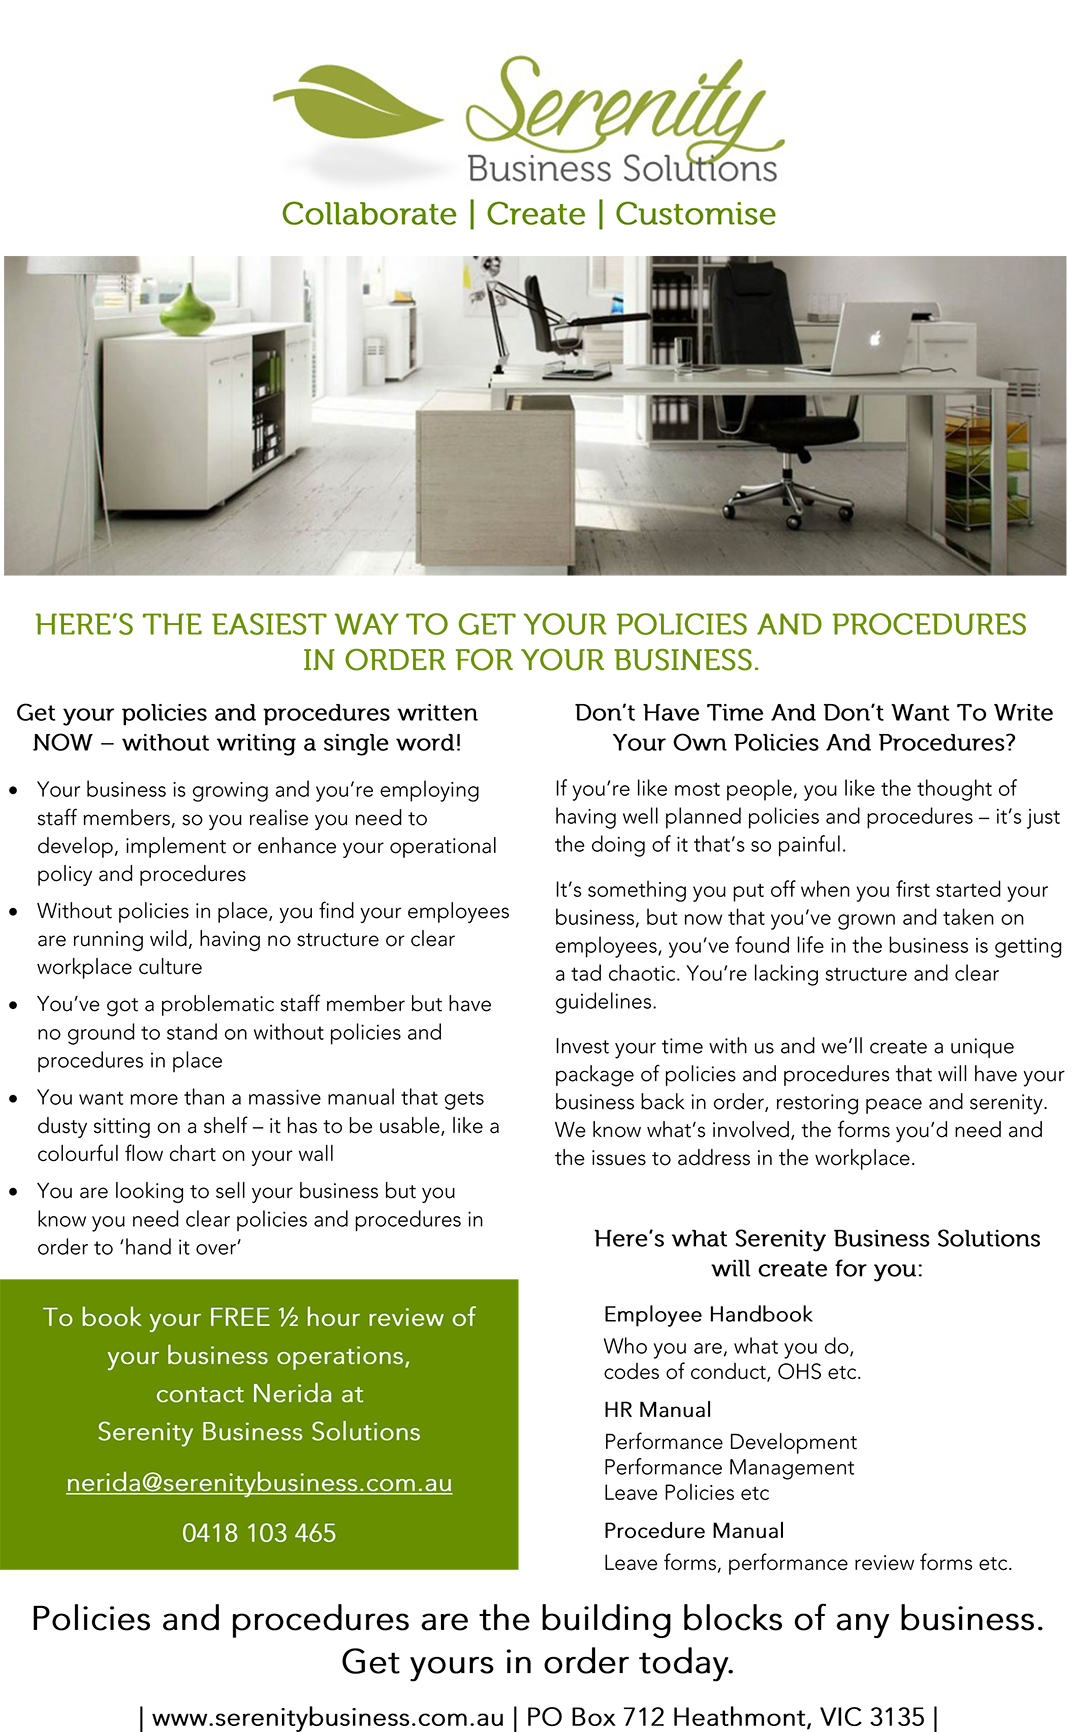 Serenity Business Solutions - Flyer Copywriting